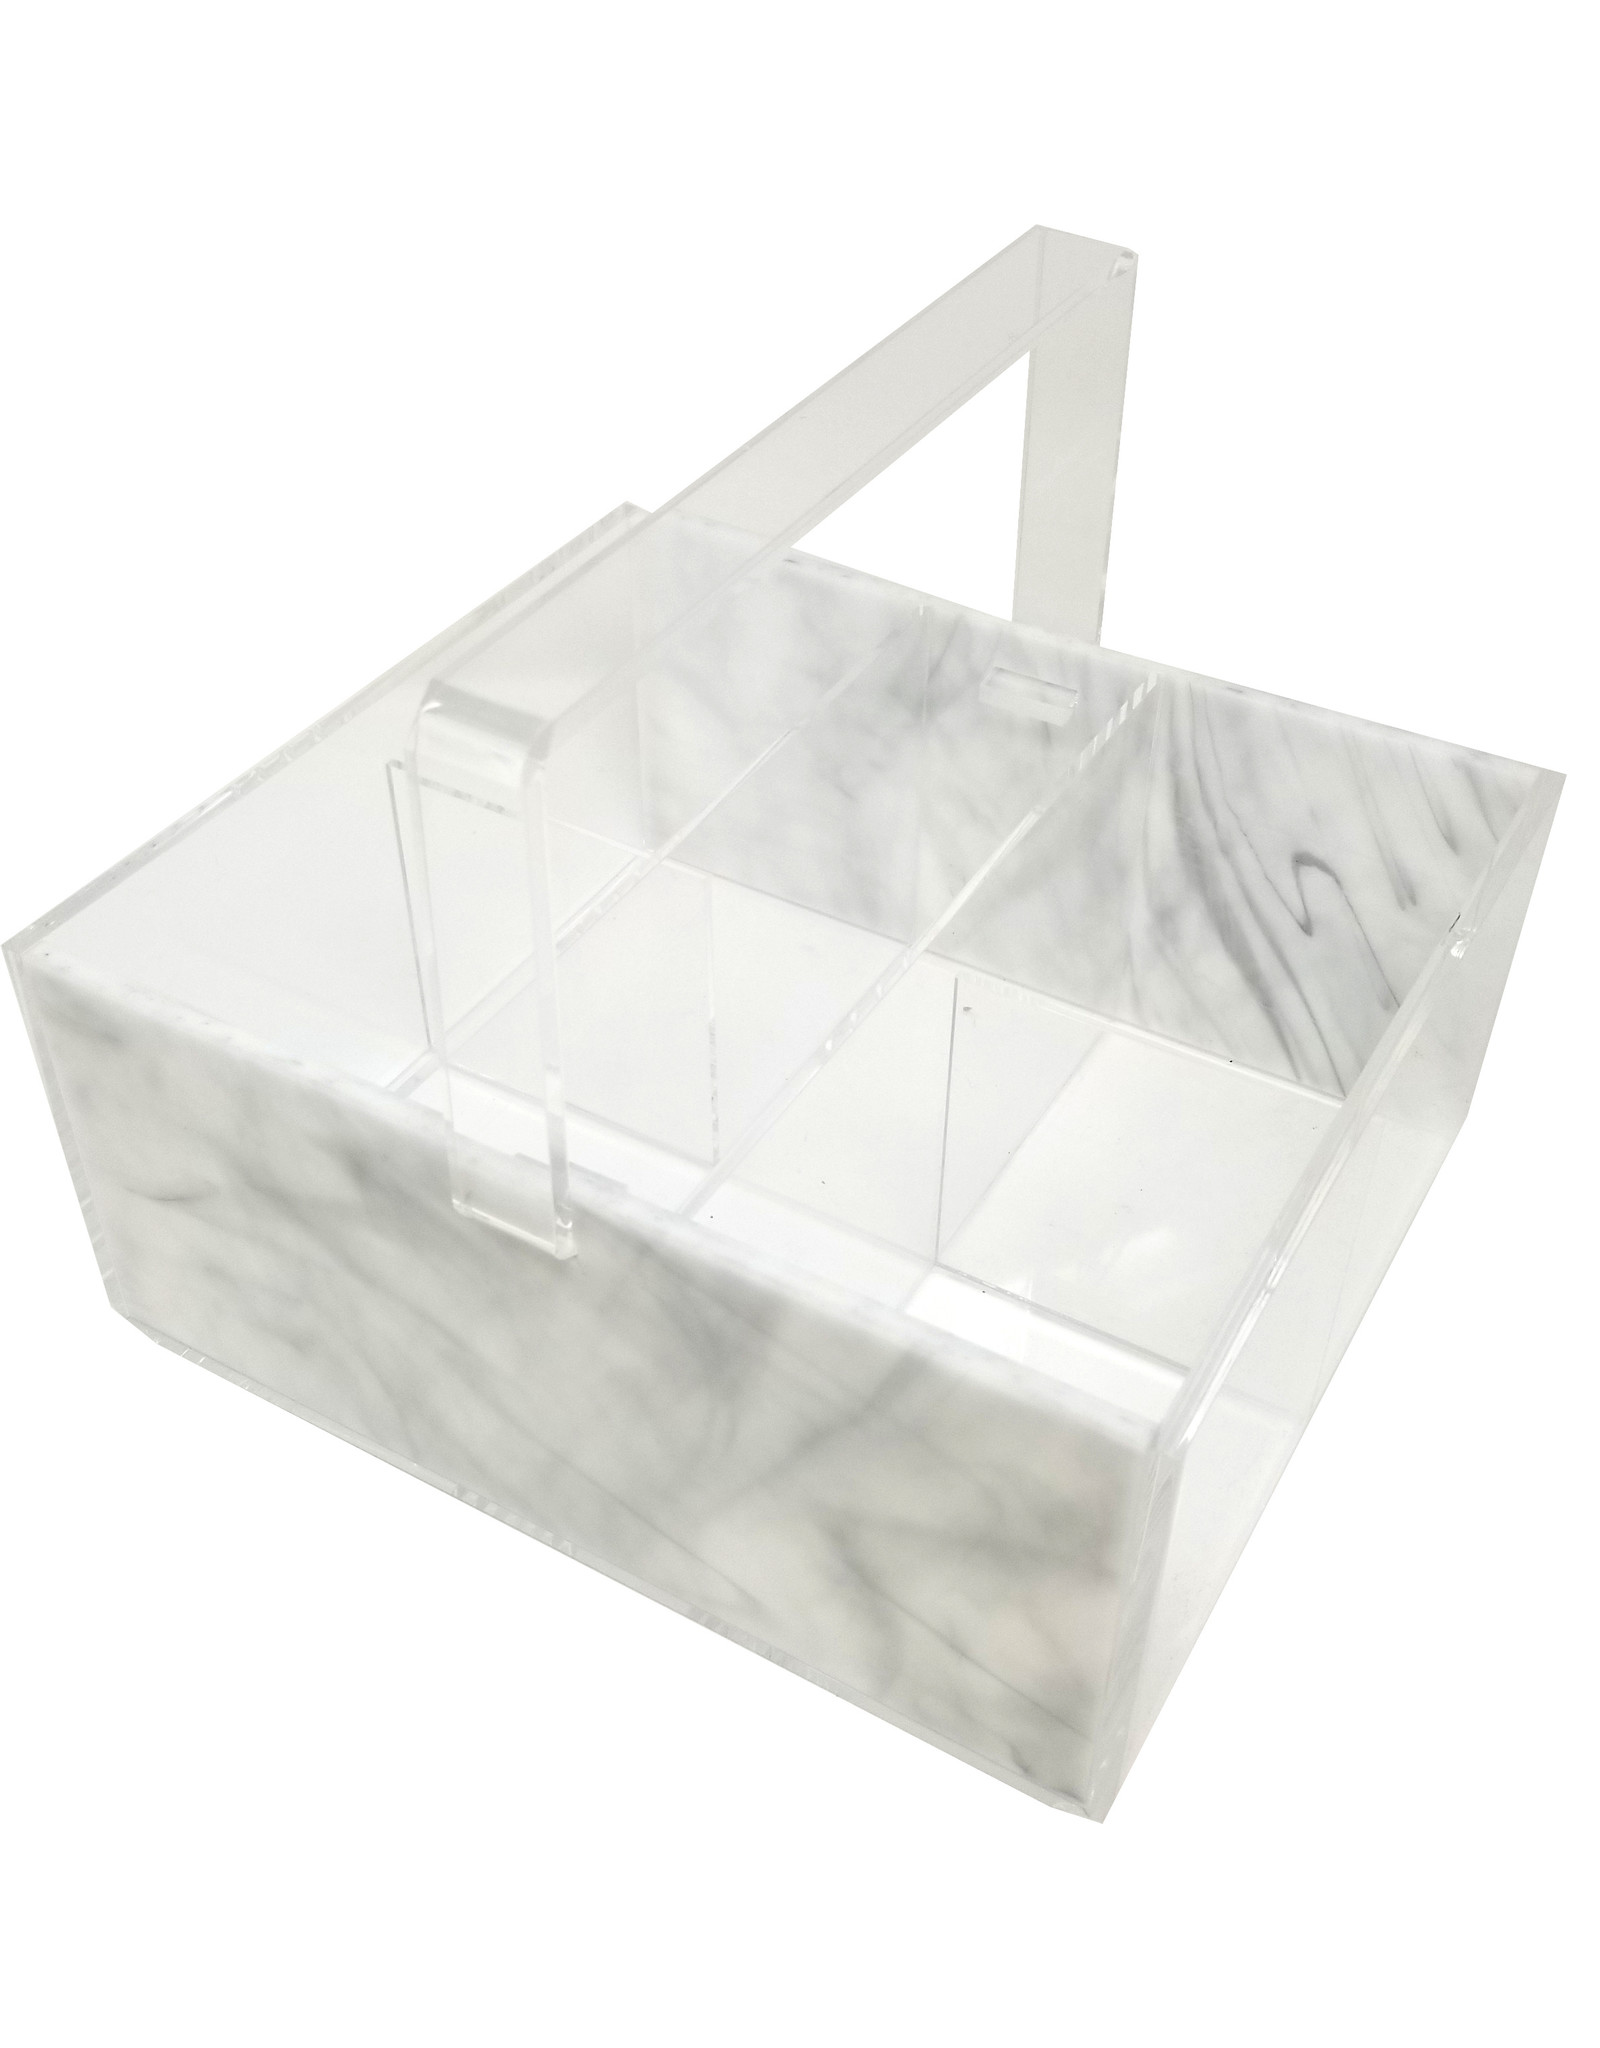 Cutlery Caddy Rectangle White Marble